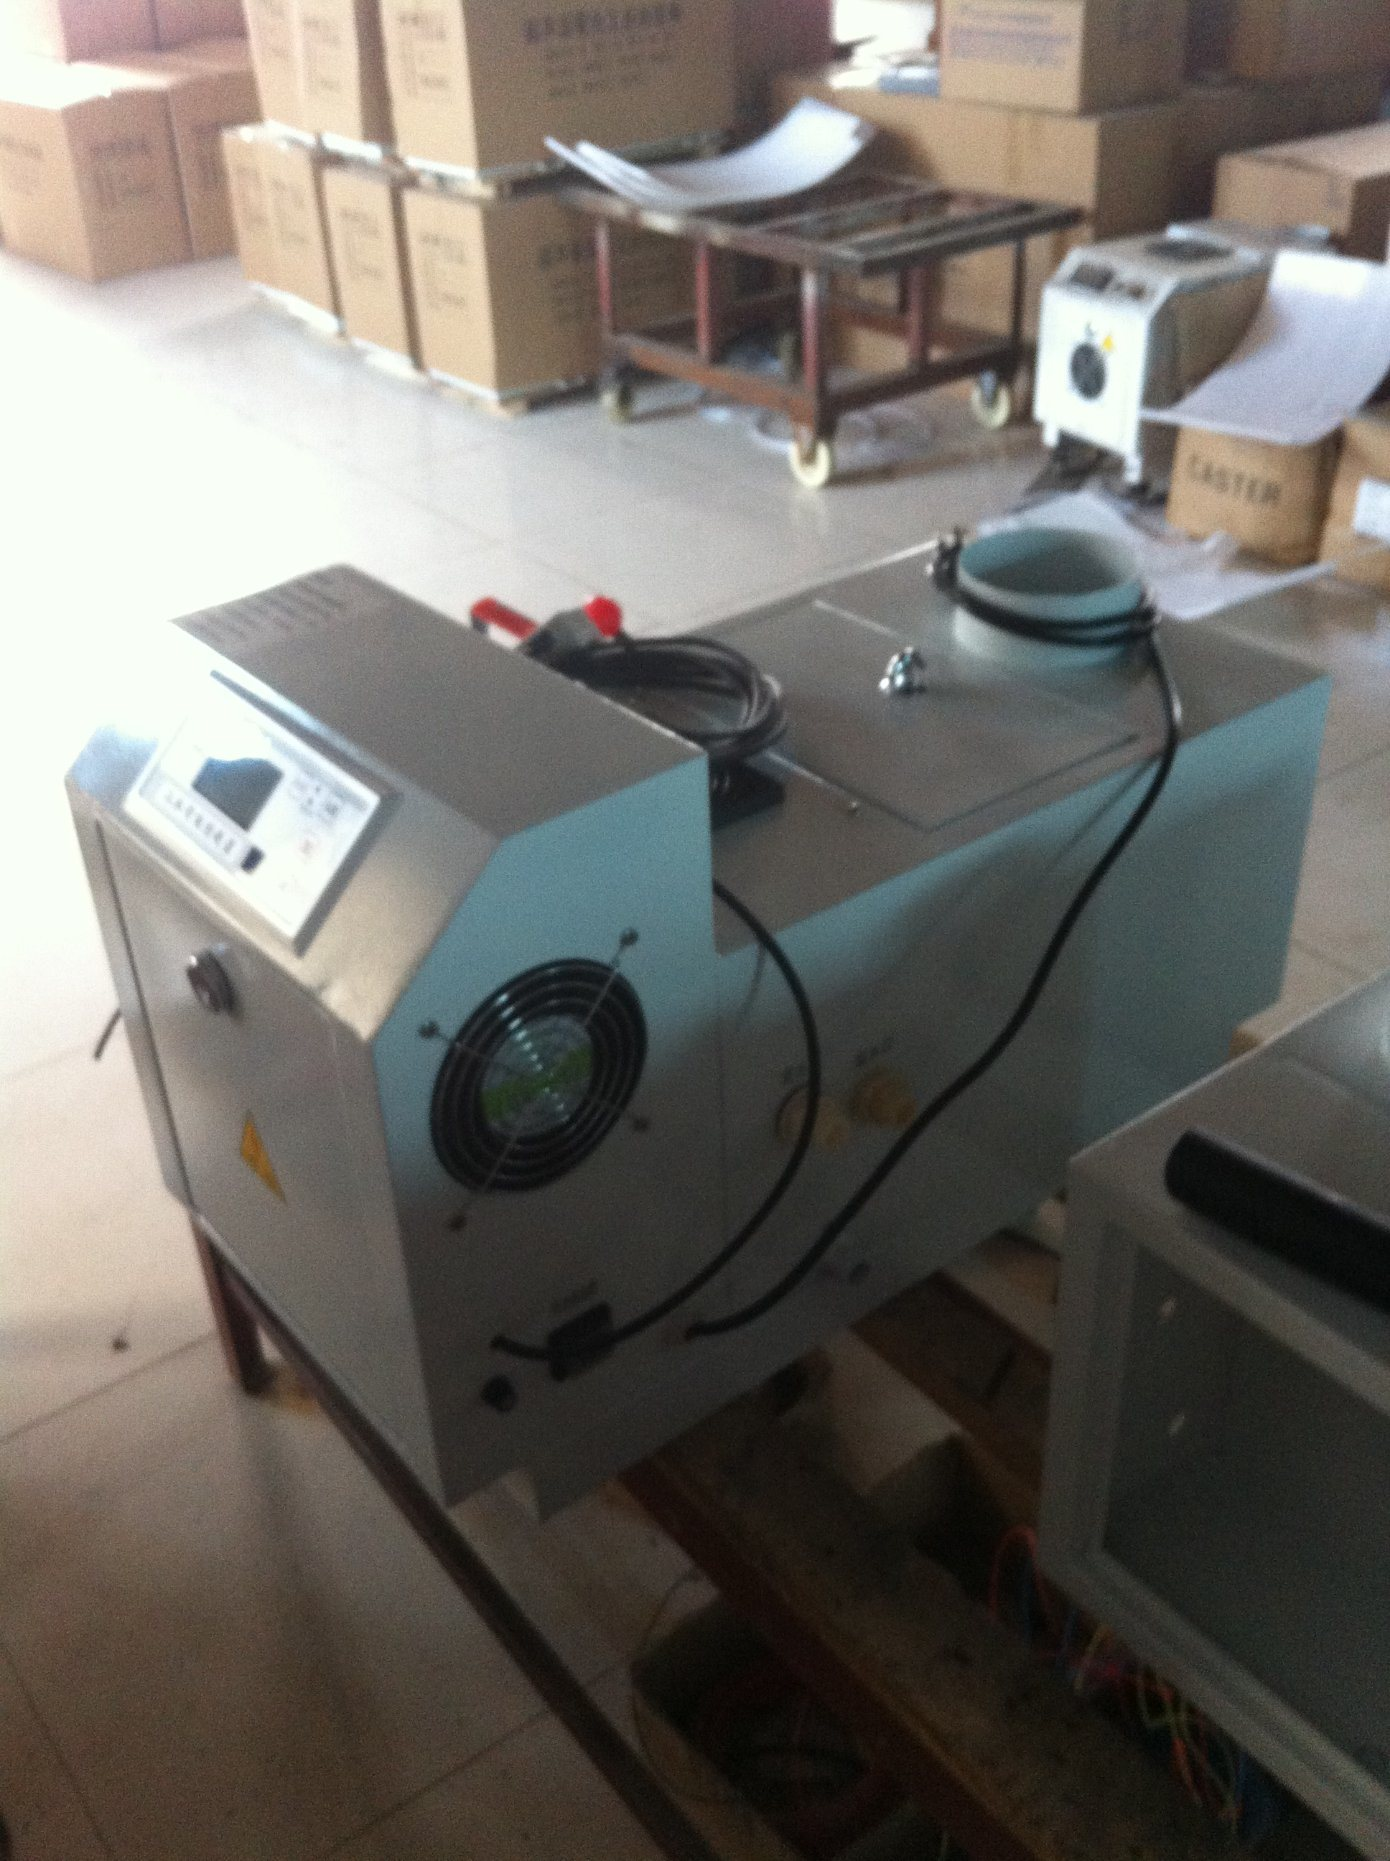 Dq-026 Humidifier for Dedusting, Professional Humidifier Manufacturer